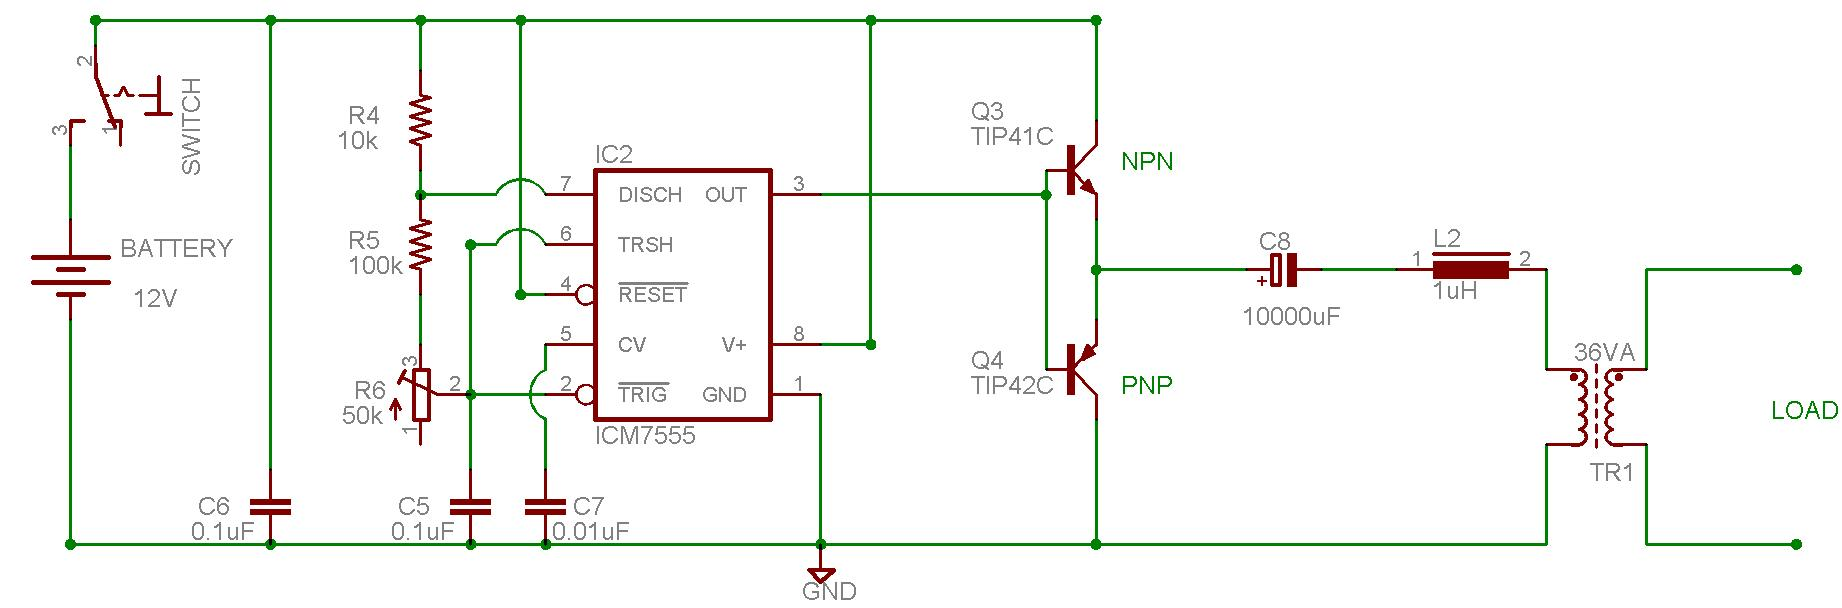 hight resolution of circuit diagram moreover 12 volt power supply circuit diagram on 12 volt dc to ac inverter circuit furthermore electric motor wiring